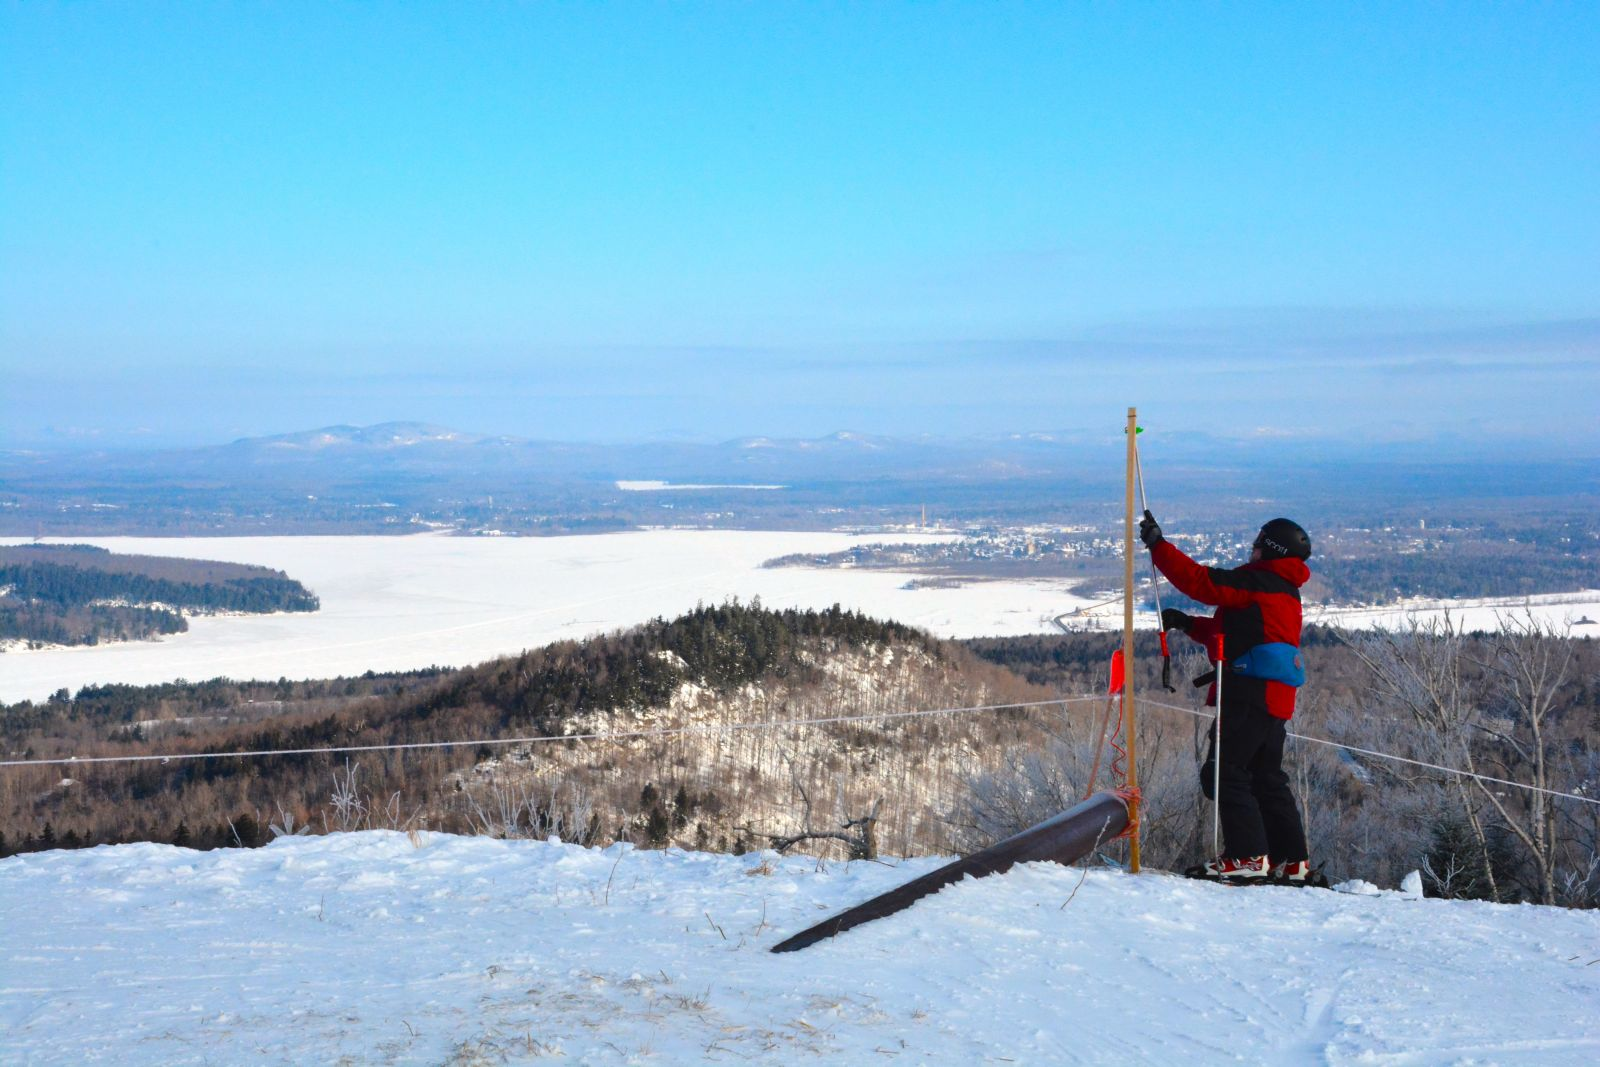 Mike Moore, a Big Tupper patroller, sets up a spot to hang the American Flag at the top of Chair 2